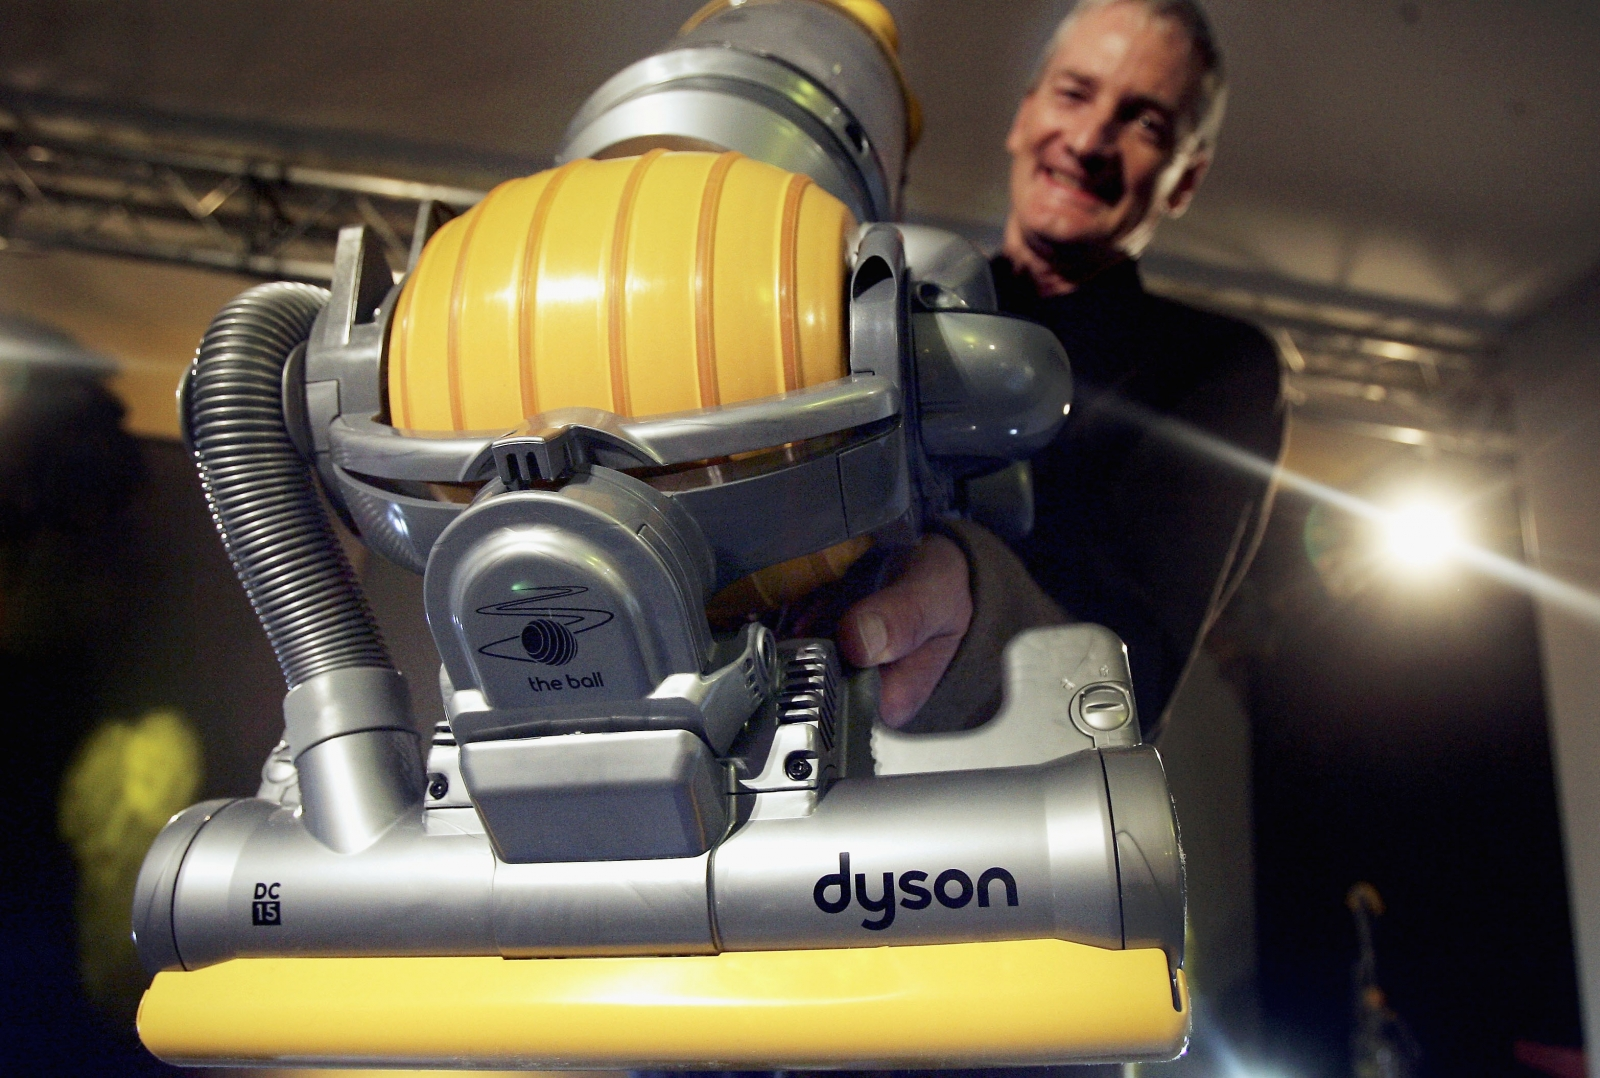 Dyson unveils £250m expansion of its R&D centre and tells there is no reason for businesses to withhold investment amid the Brexit vote